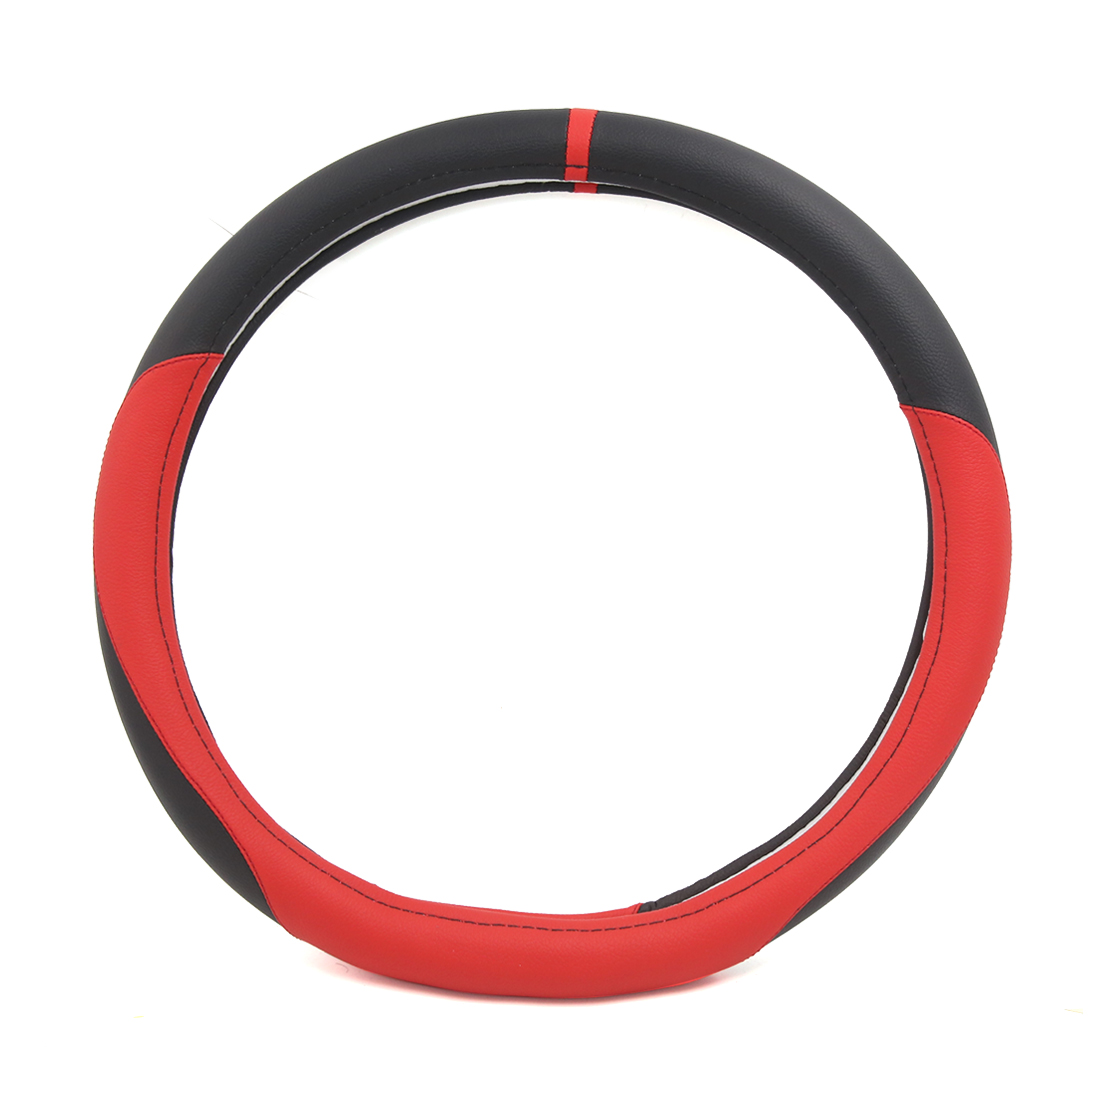 15inch Black Red D Shaped Nonslip Cover Protector for Truck Car Steering Wheel